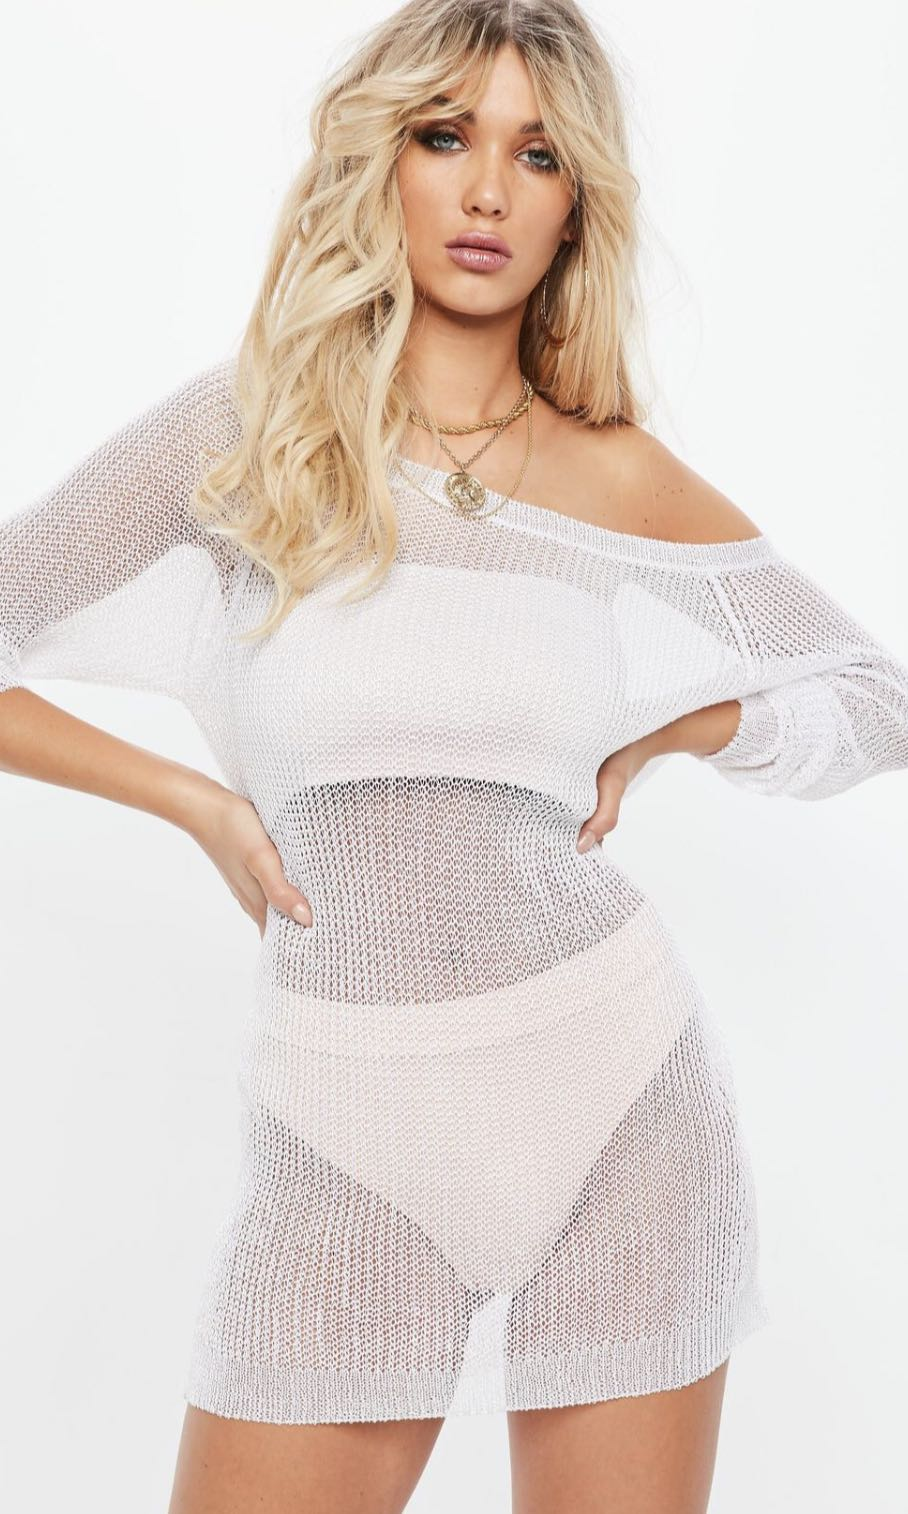 MISSGUIDED WHITE METALLIC OFF SHOULDER KNITTED JUMPER DRESS - SIZE 10